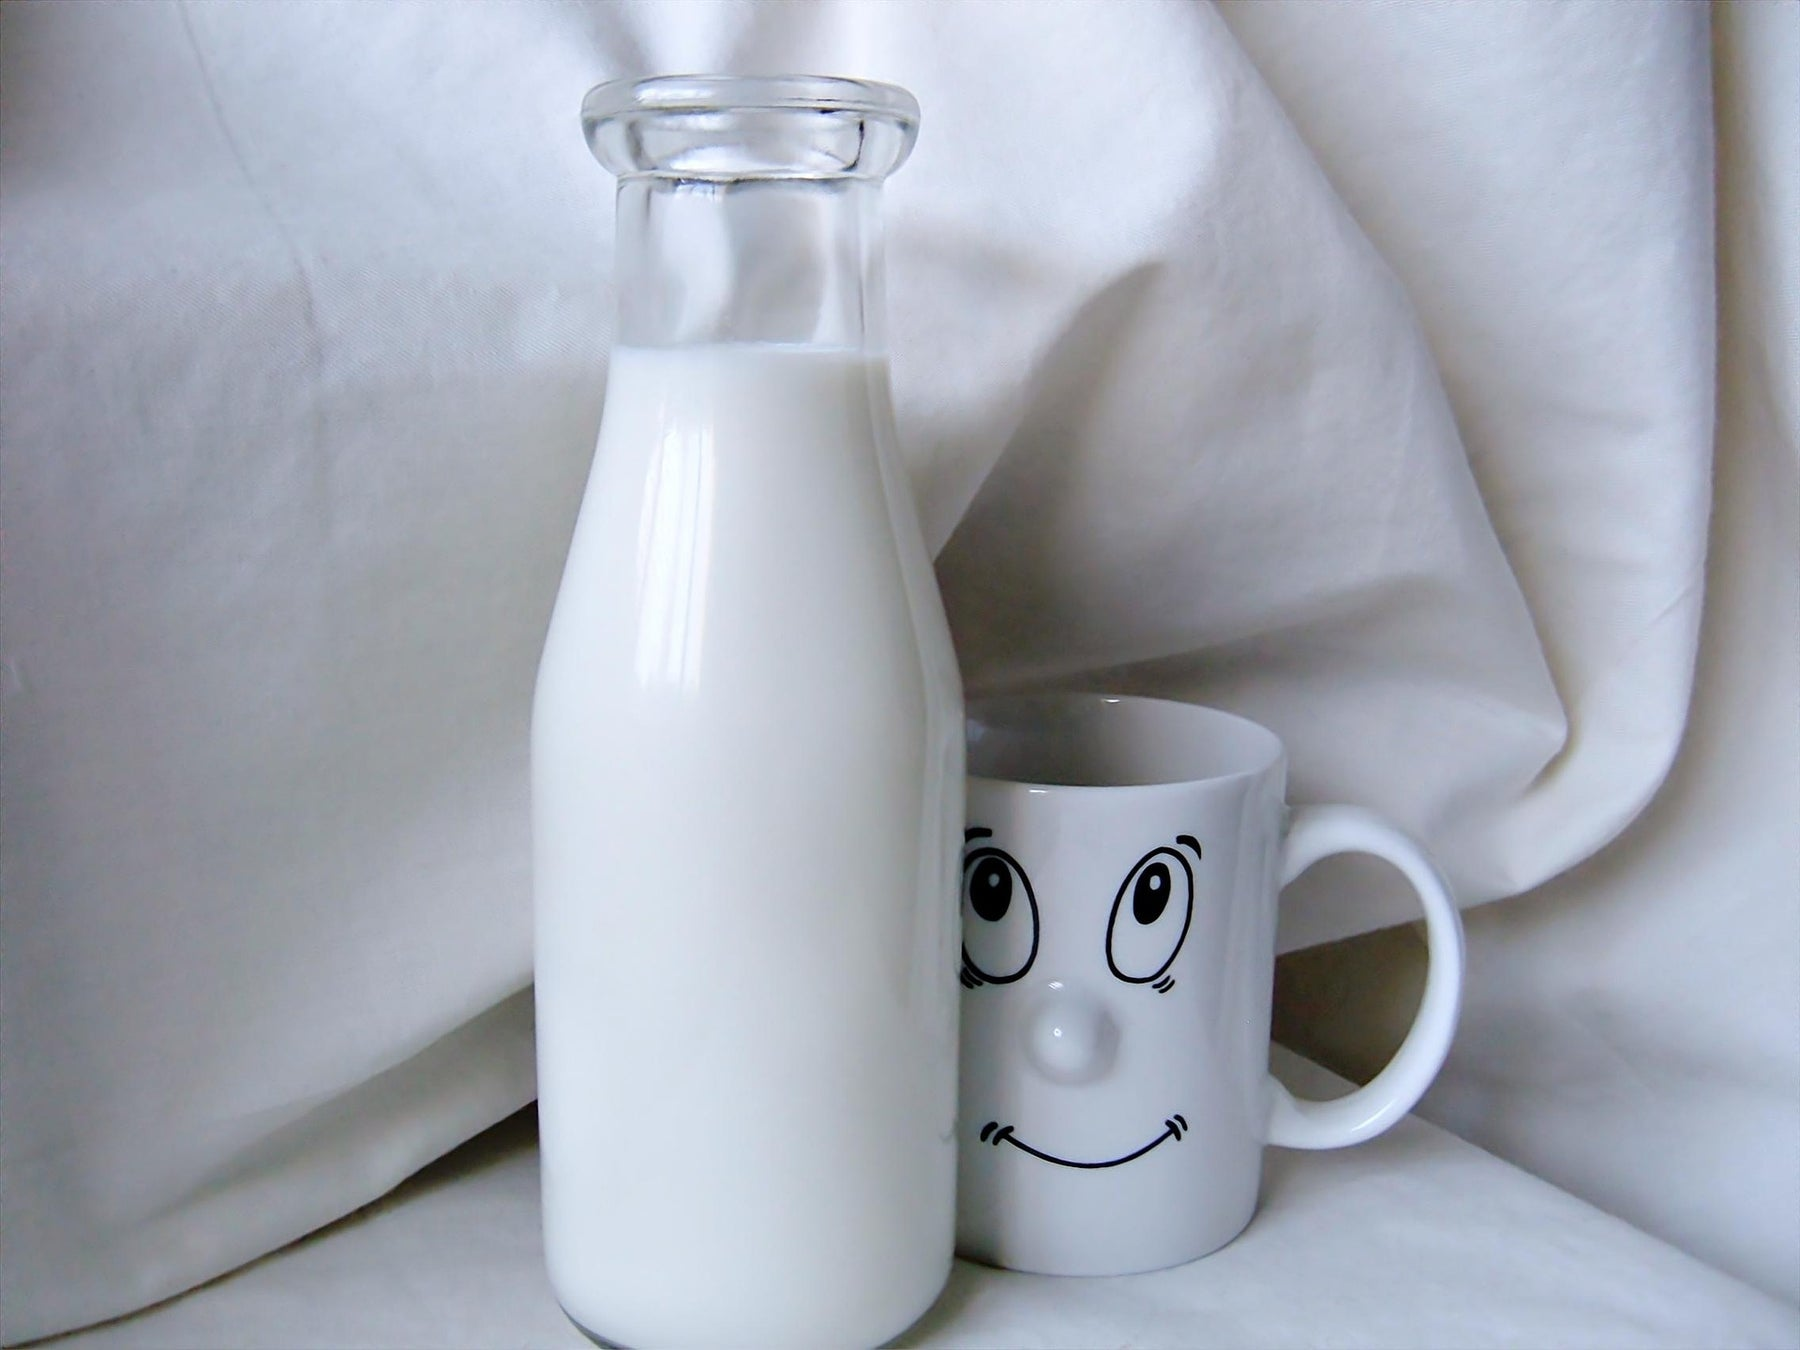 Is milk really that good for your bones? Beware of these health myths